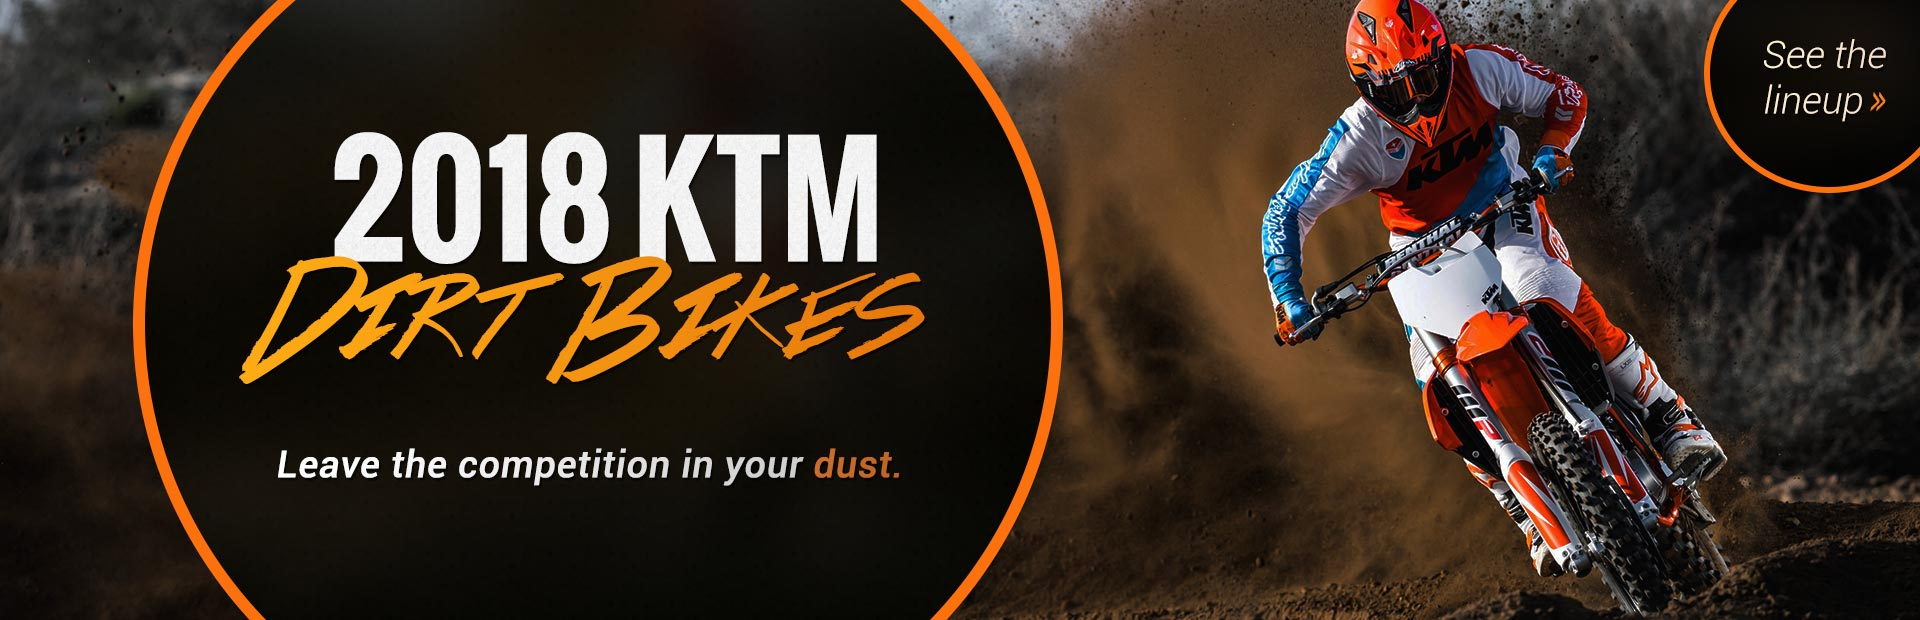 2018 KTM Dirt Bikes: Click here to view the models.